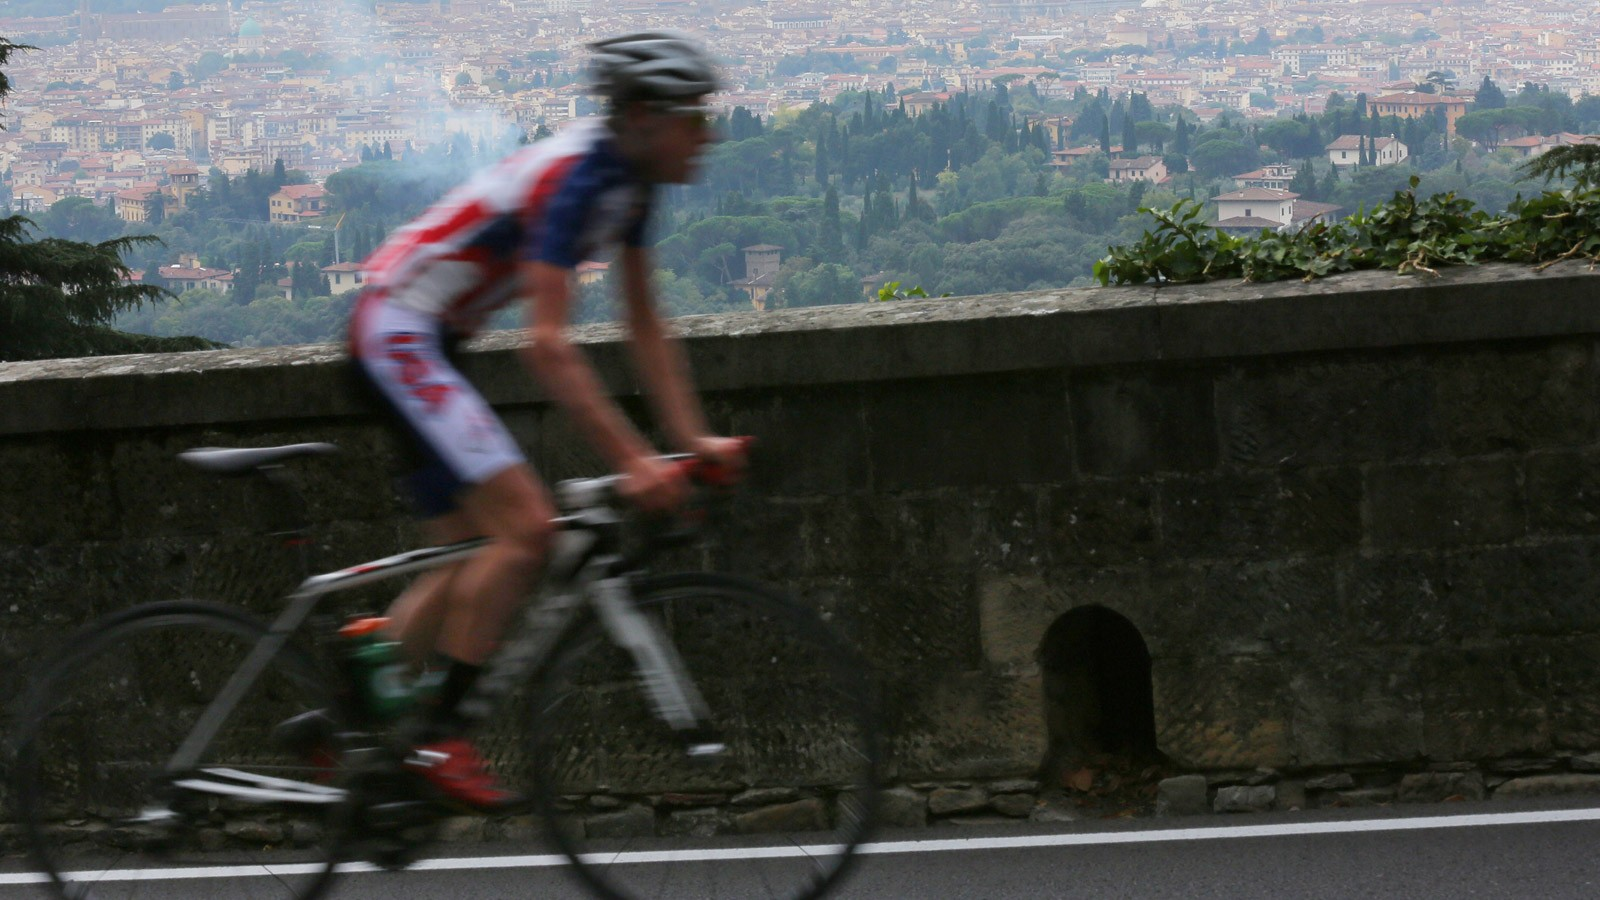 It's possible to prepare for climbs without hills